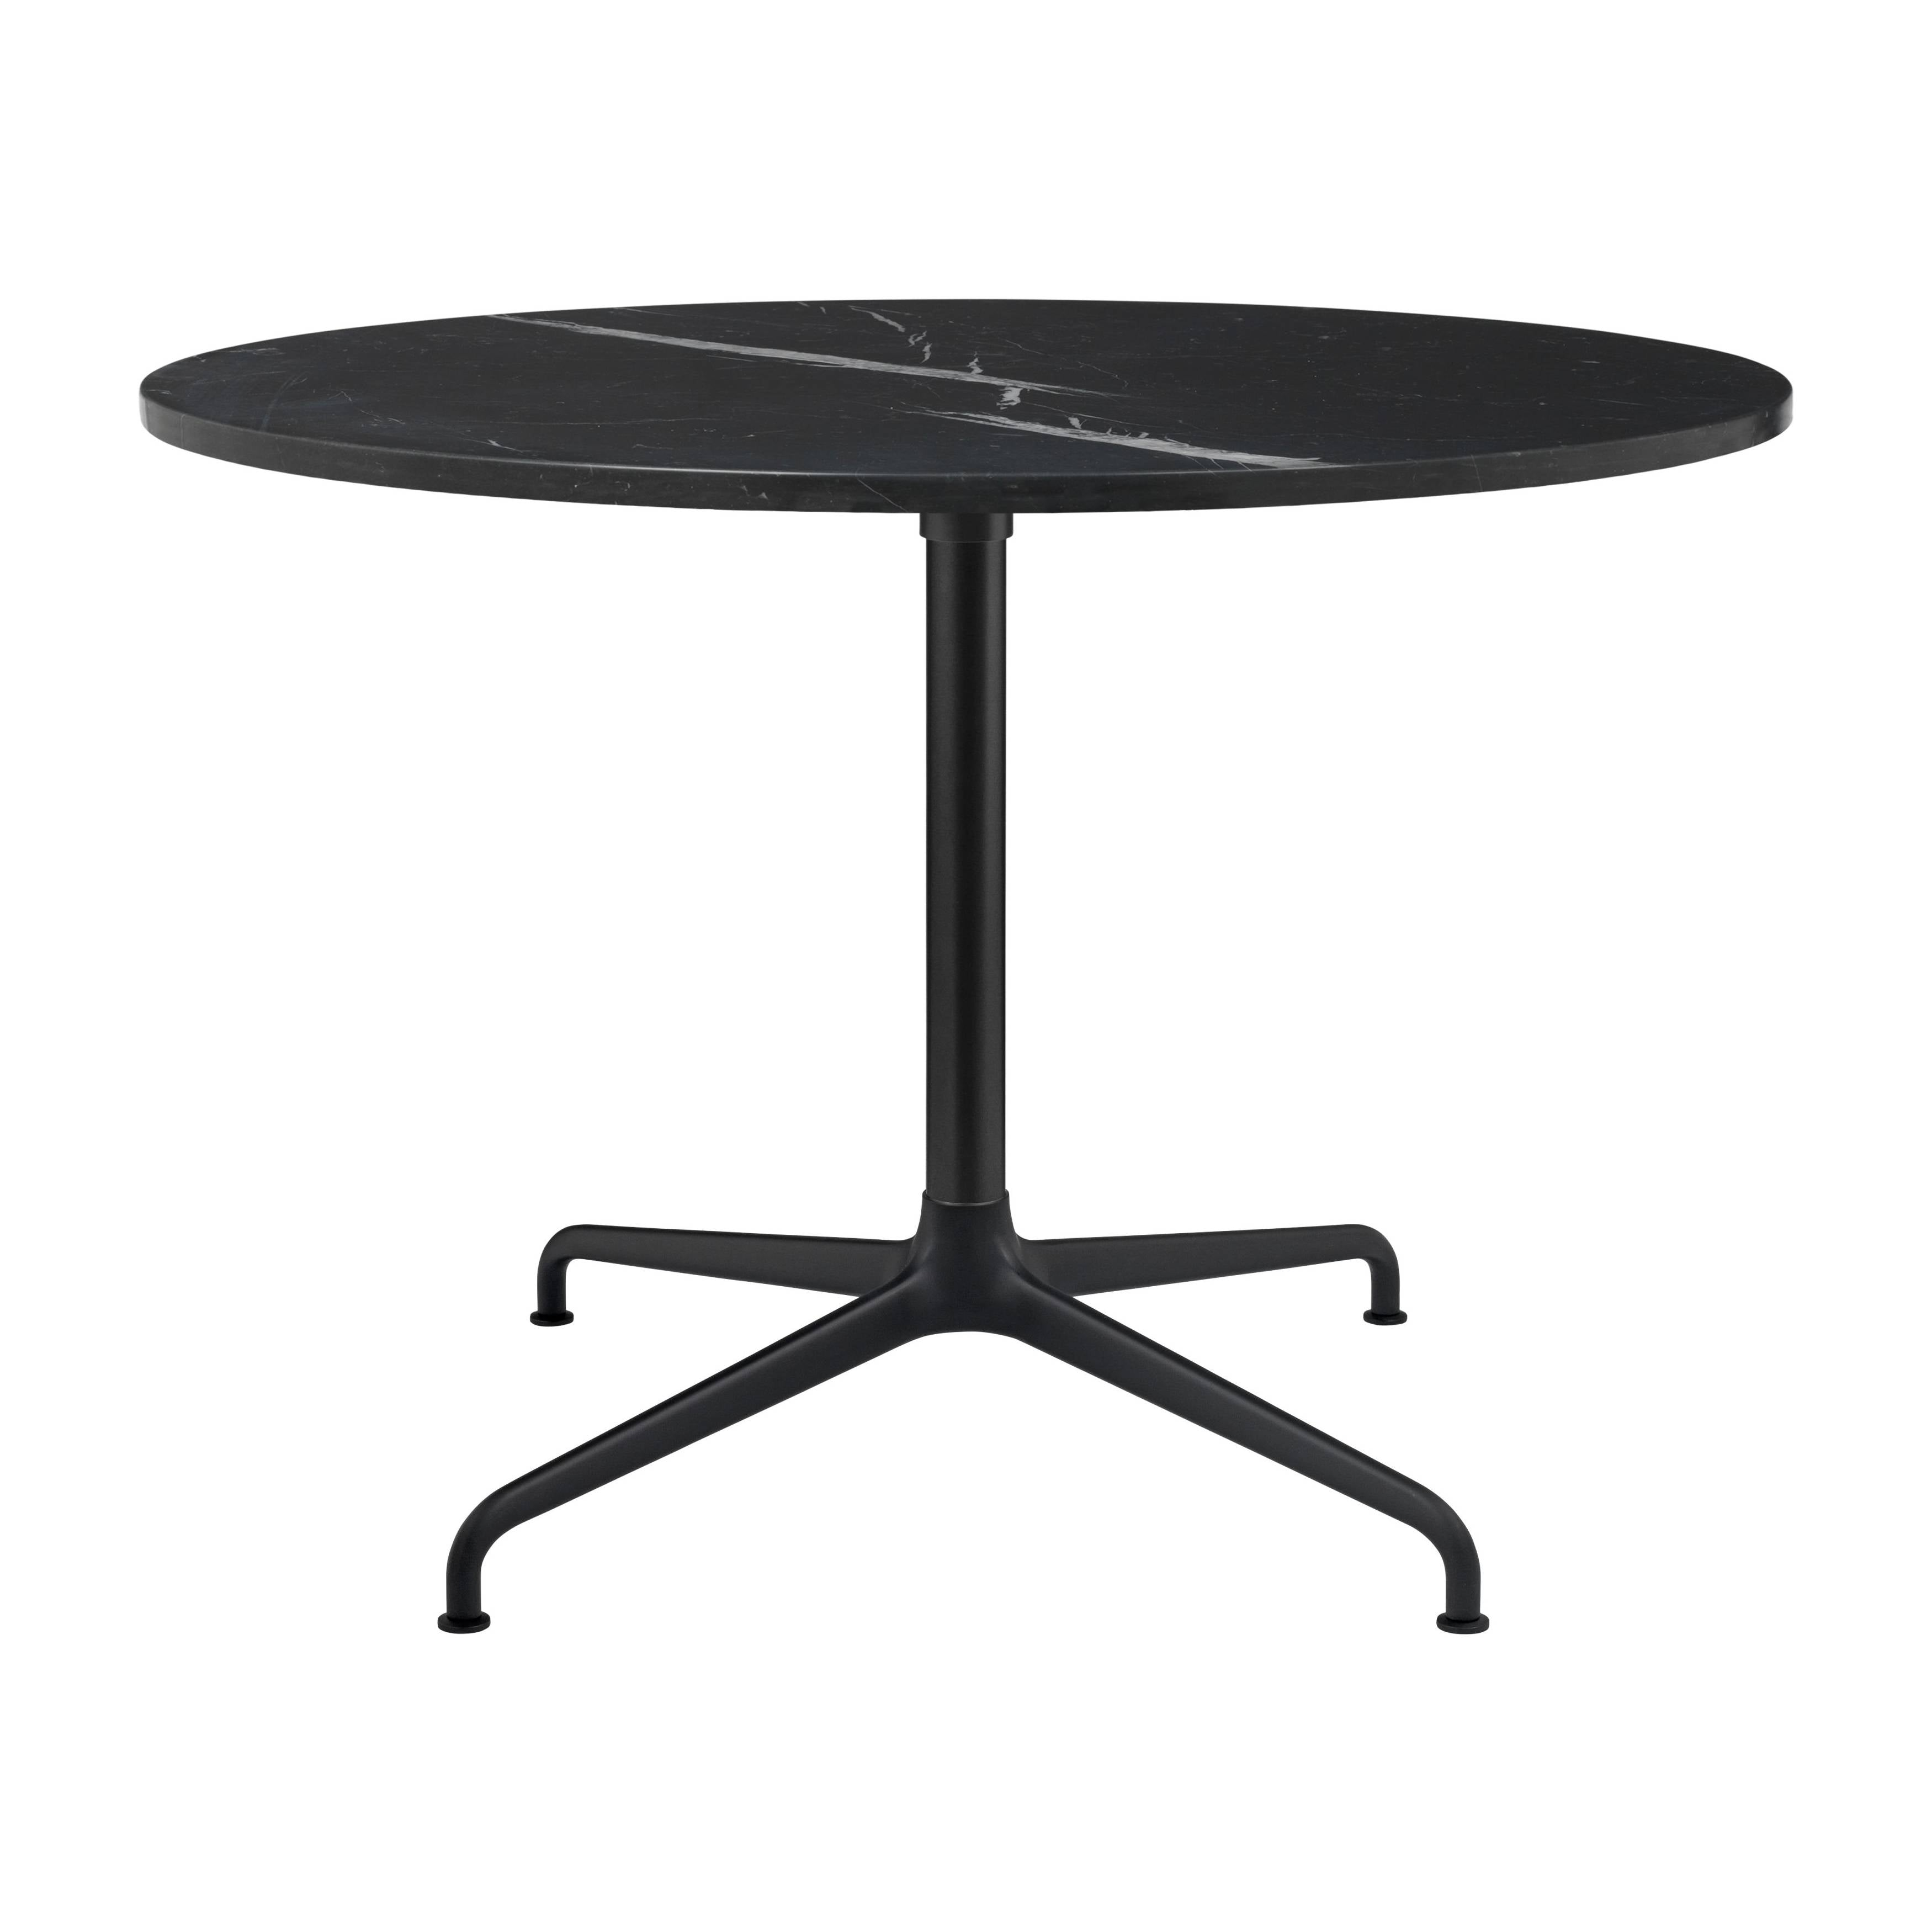 Beetle Lounge Table: Round + Large + Black Marquina Marble + Black Matte Base